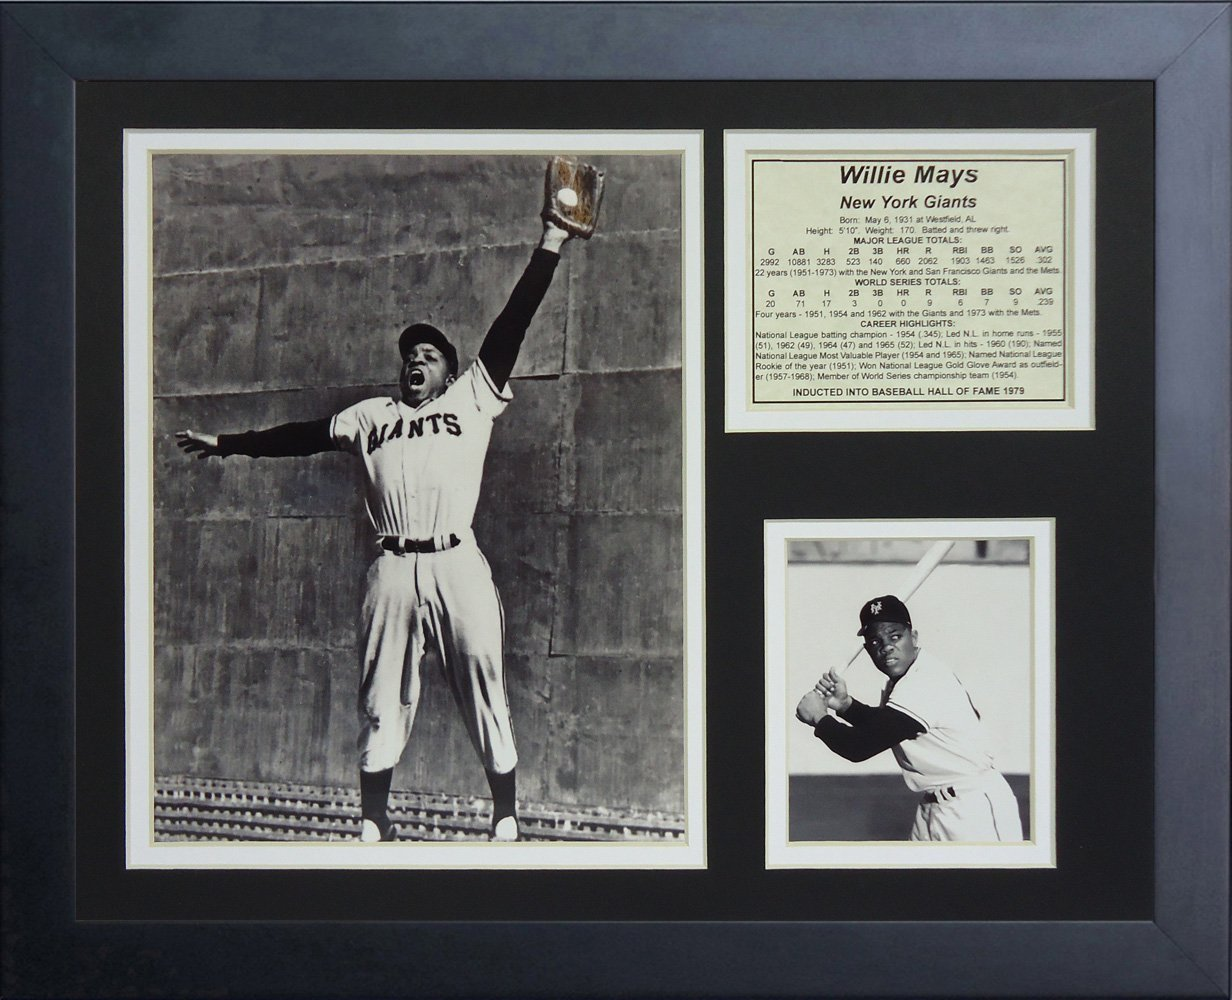 Legends Never Die Willie Mays The Catch Framed Photo Collage, 11 by 14-Inch 11251U